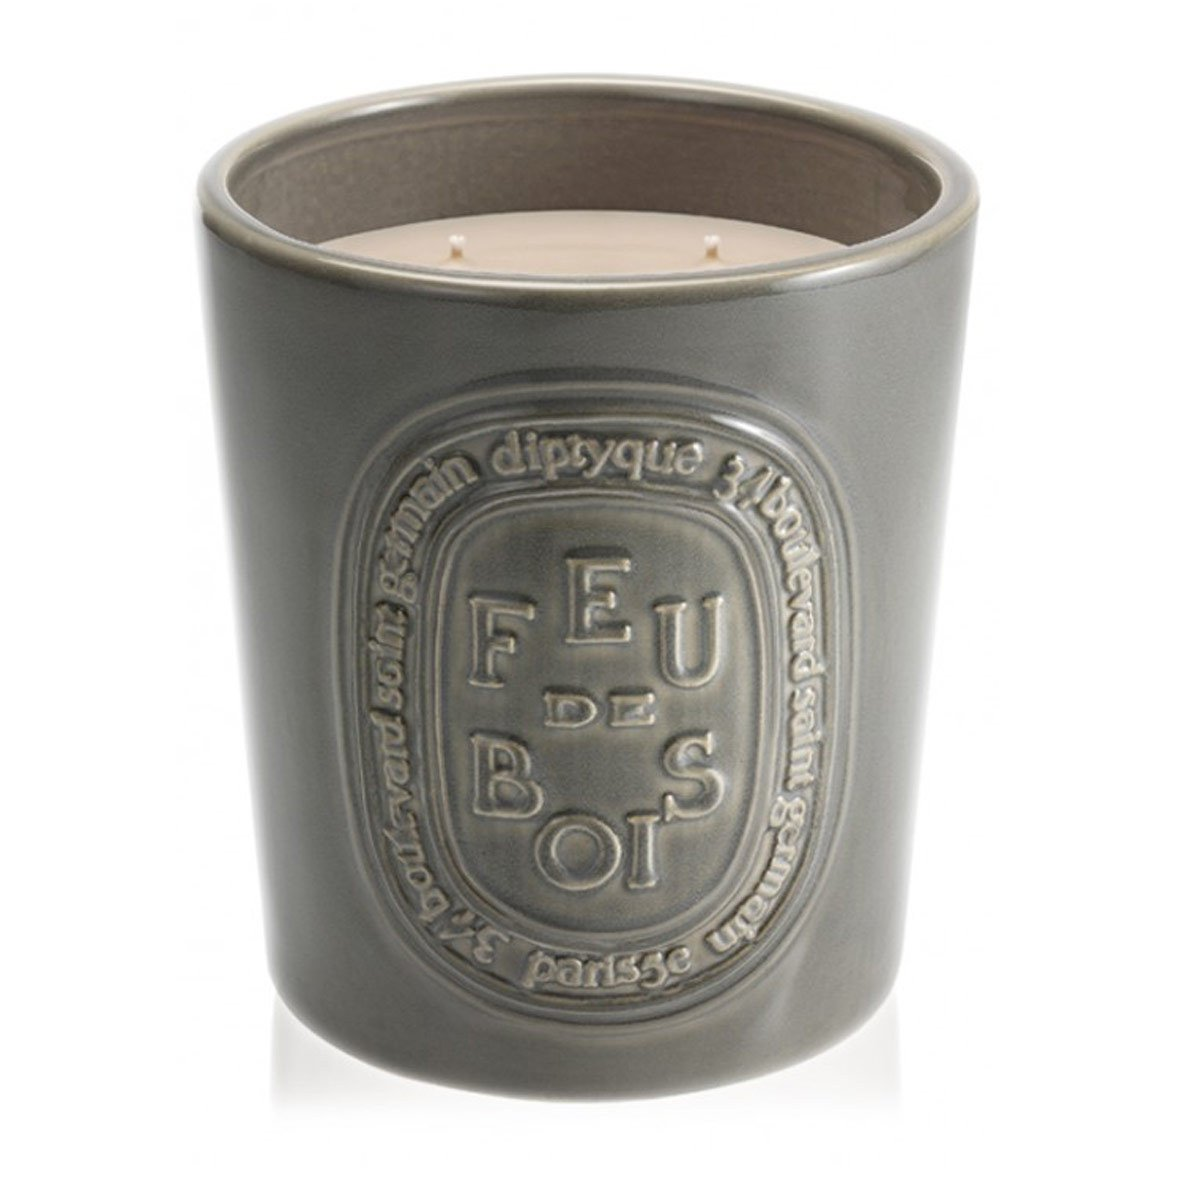 Diptyque Feu de bois Indoor/Outdoor Ceramic Candle-51.3 oz by Diptyque (Image #1)